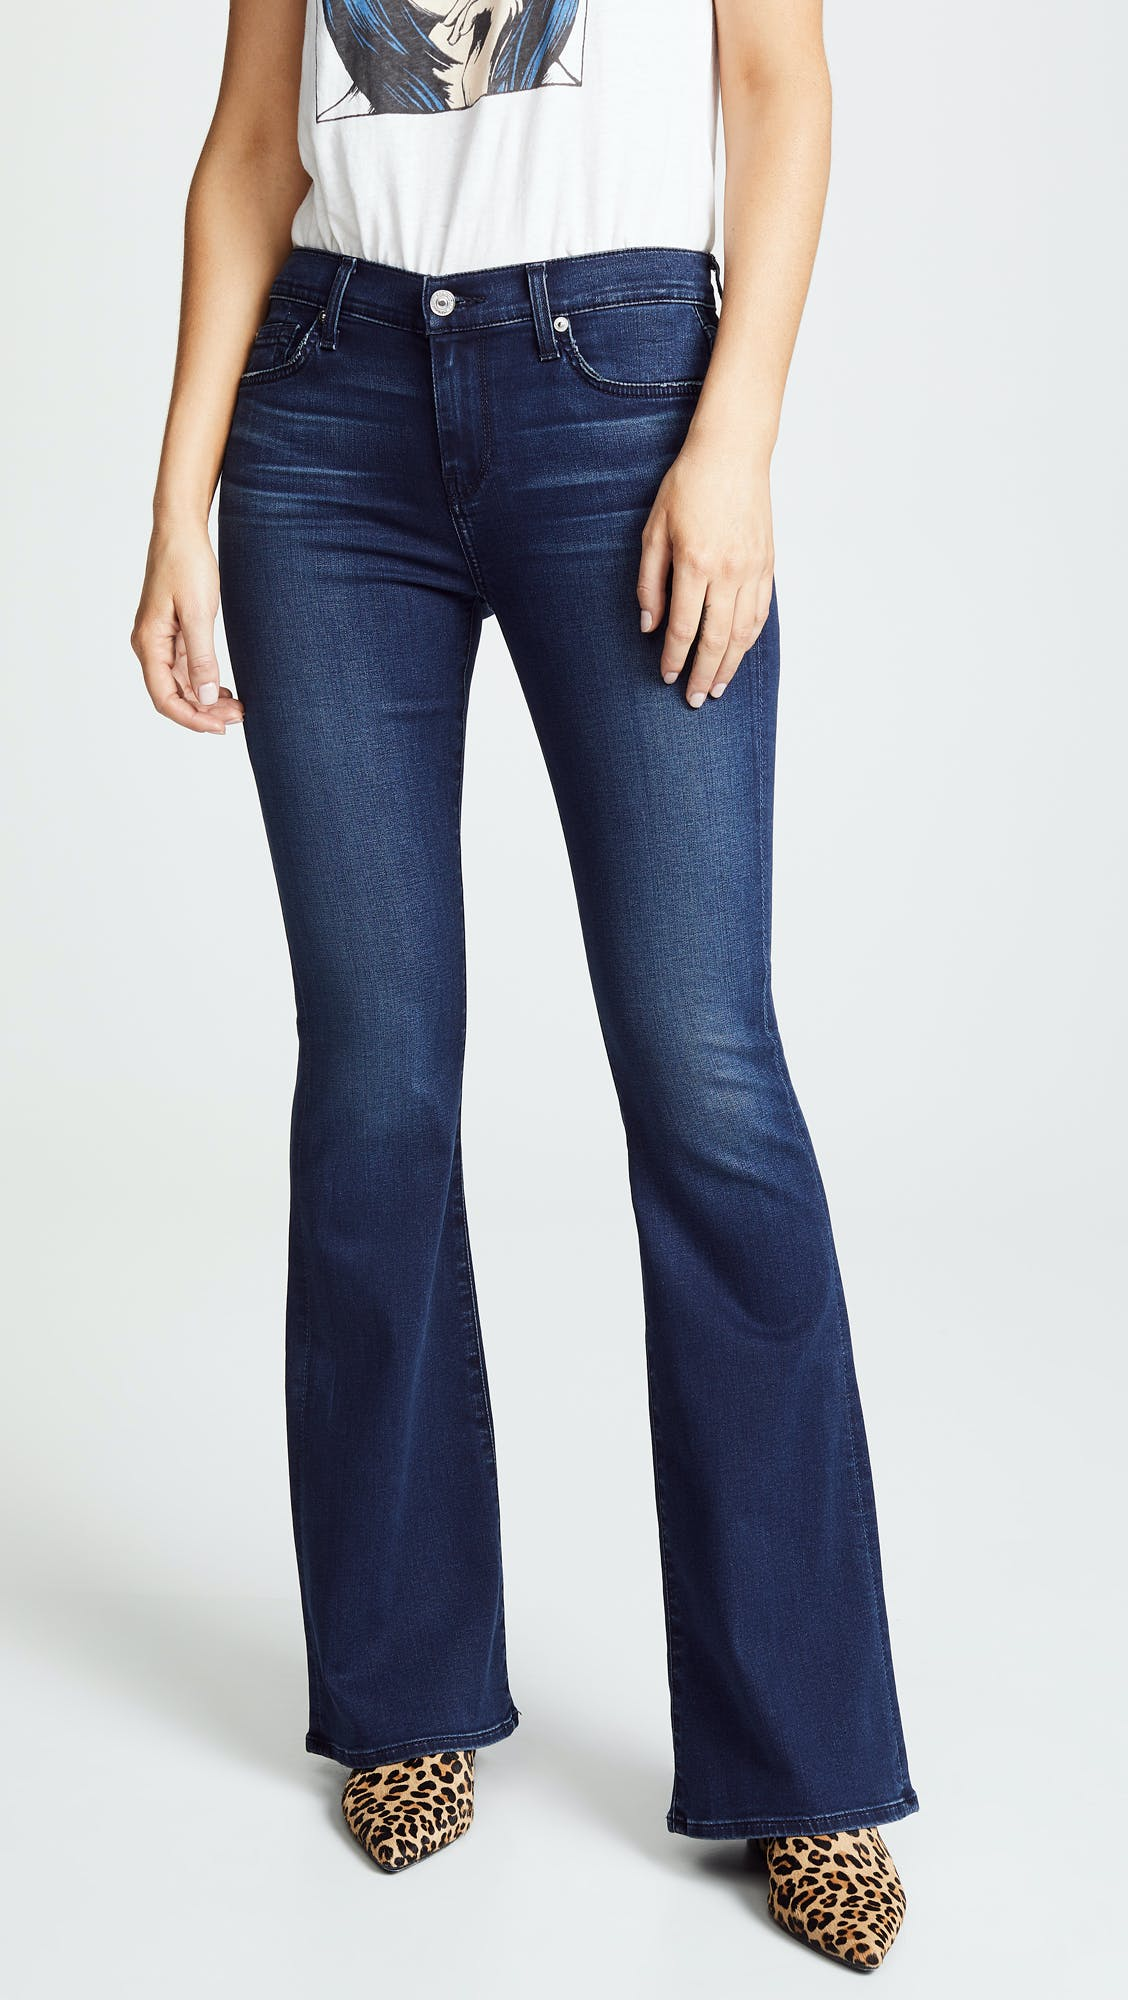 7 for all mankind jeans, 7fam, flares, high rise jeans, high waisted jeans, flared jeans